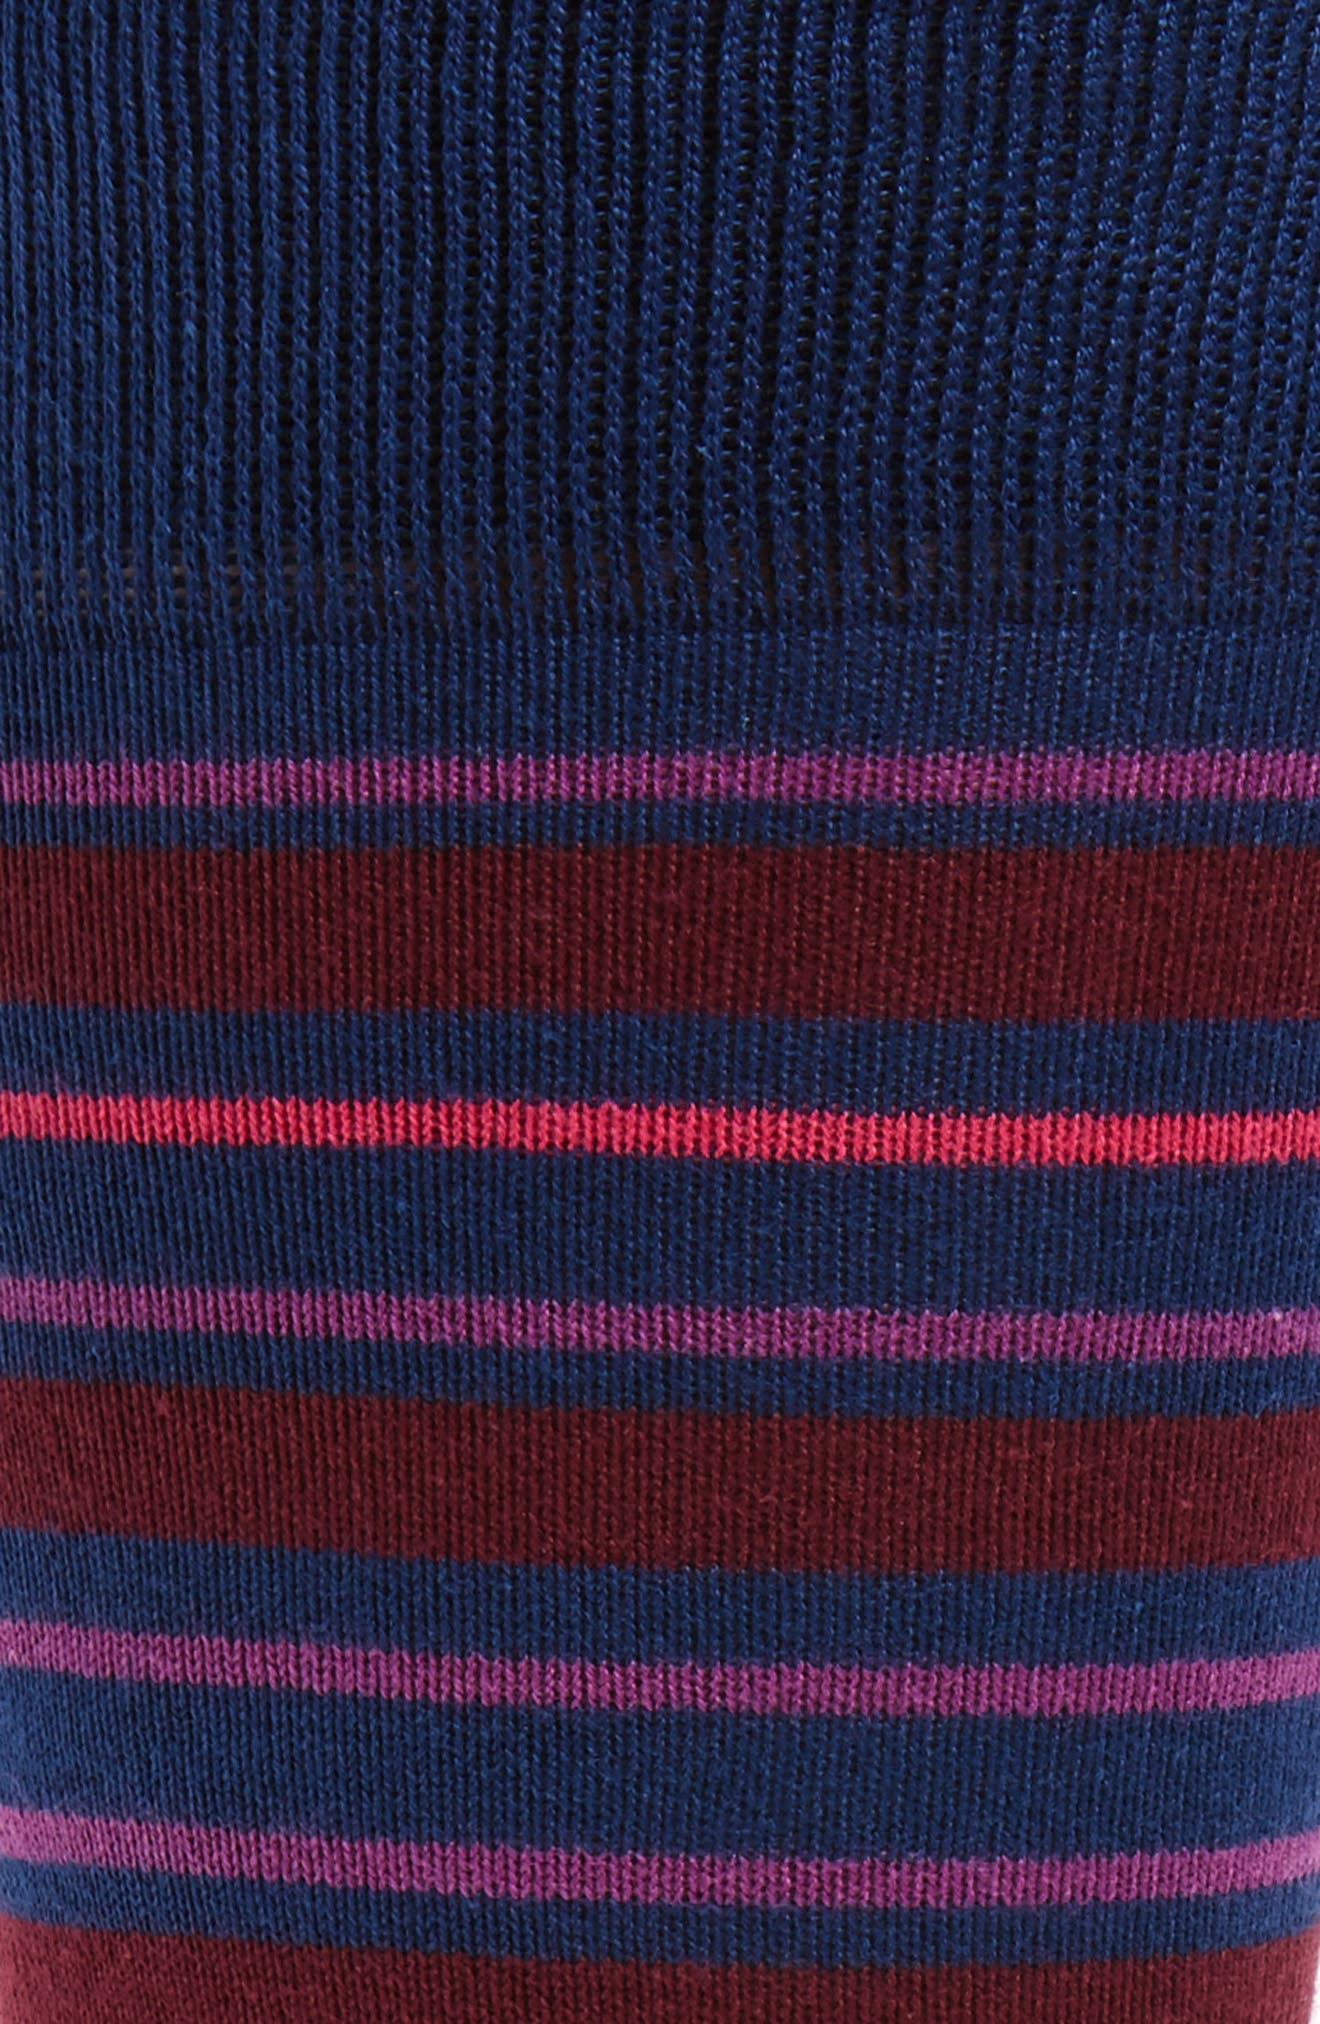 Fern Stripe Socks,                             Alternate thumbnail 2, color,                             415